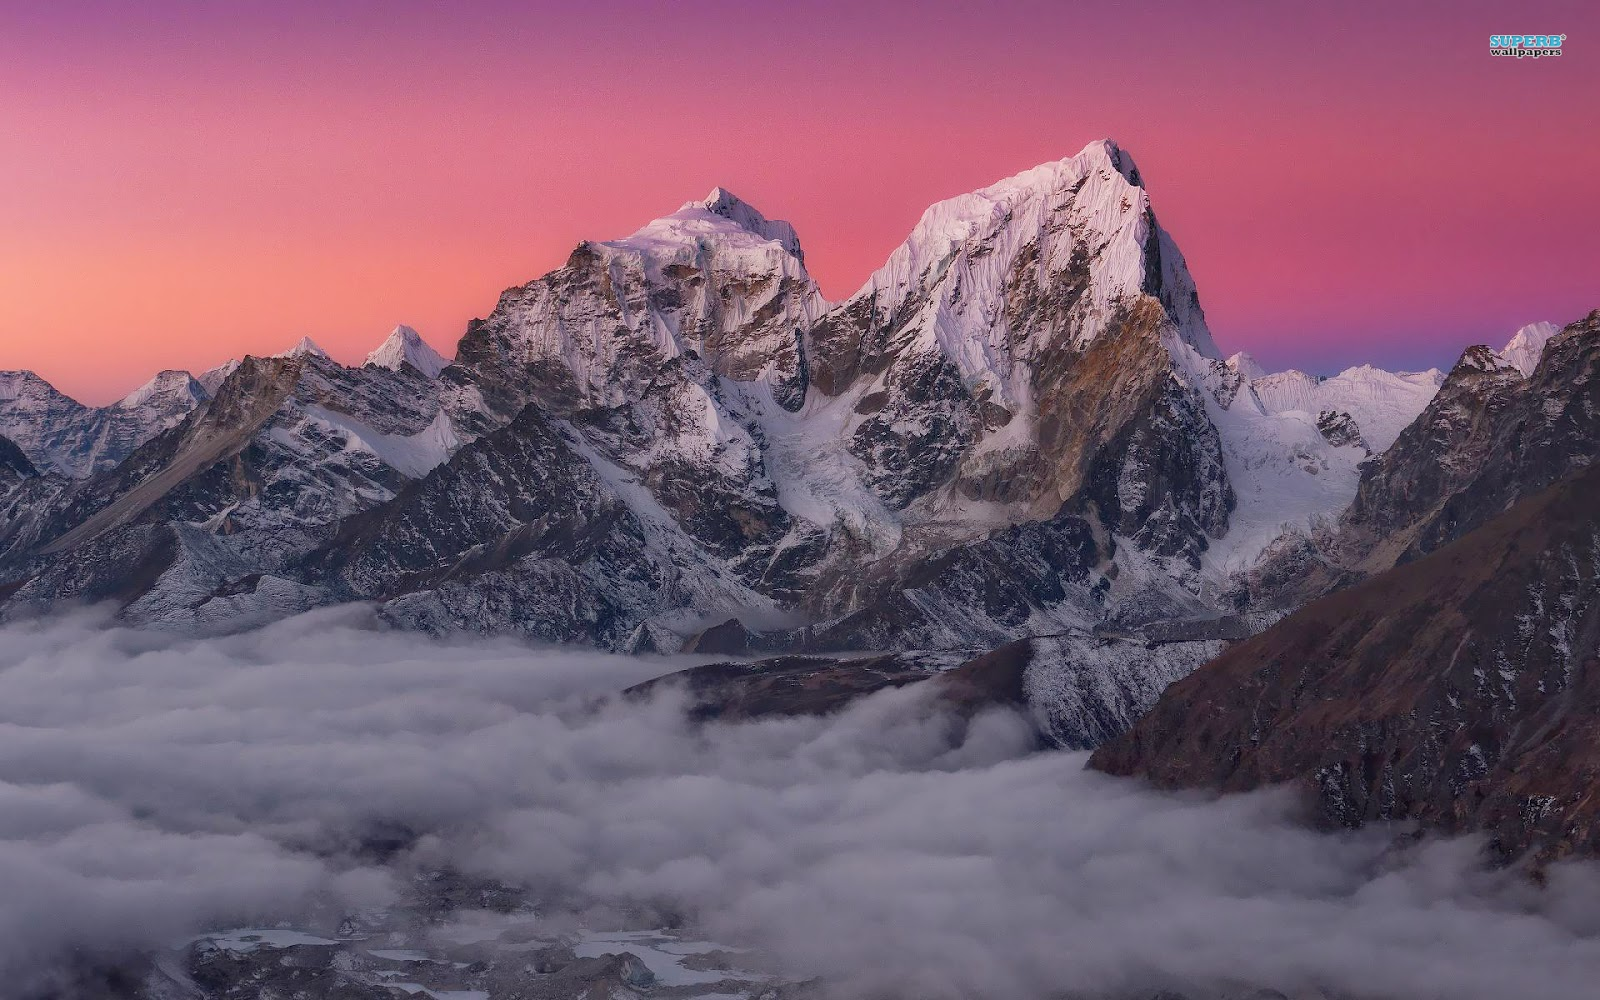 snowy-mountains-image-beautiful-nature-images-wallpapers